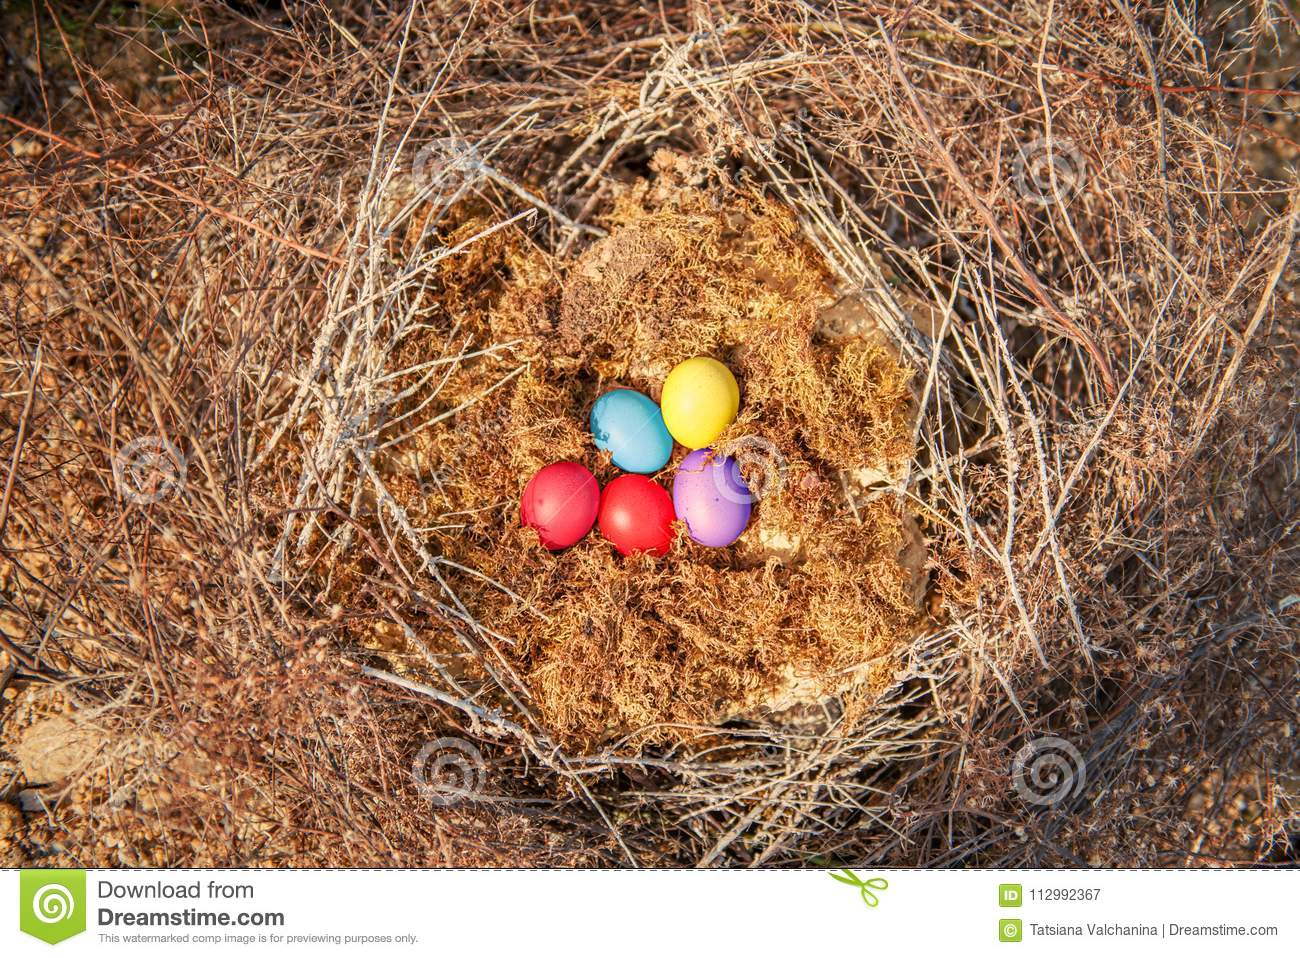 Easter eggs in a nest of straw branches lie on a moss